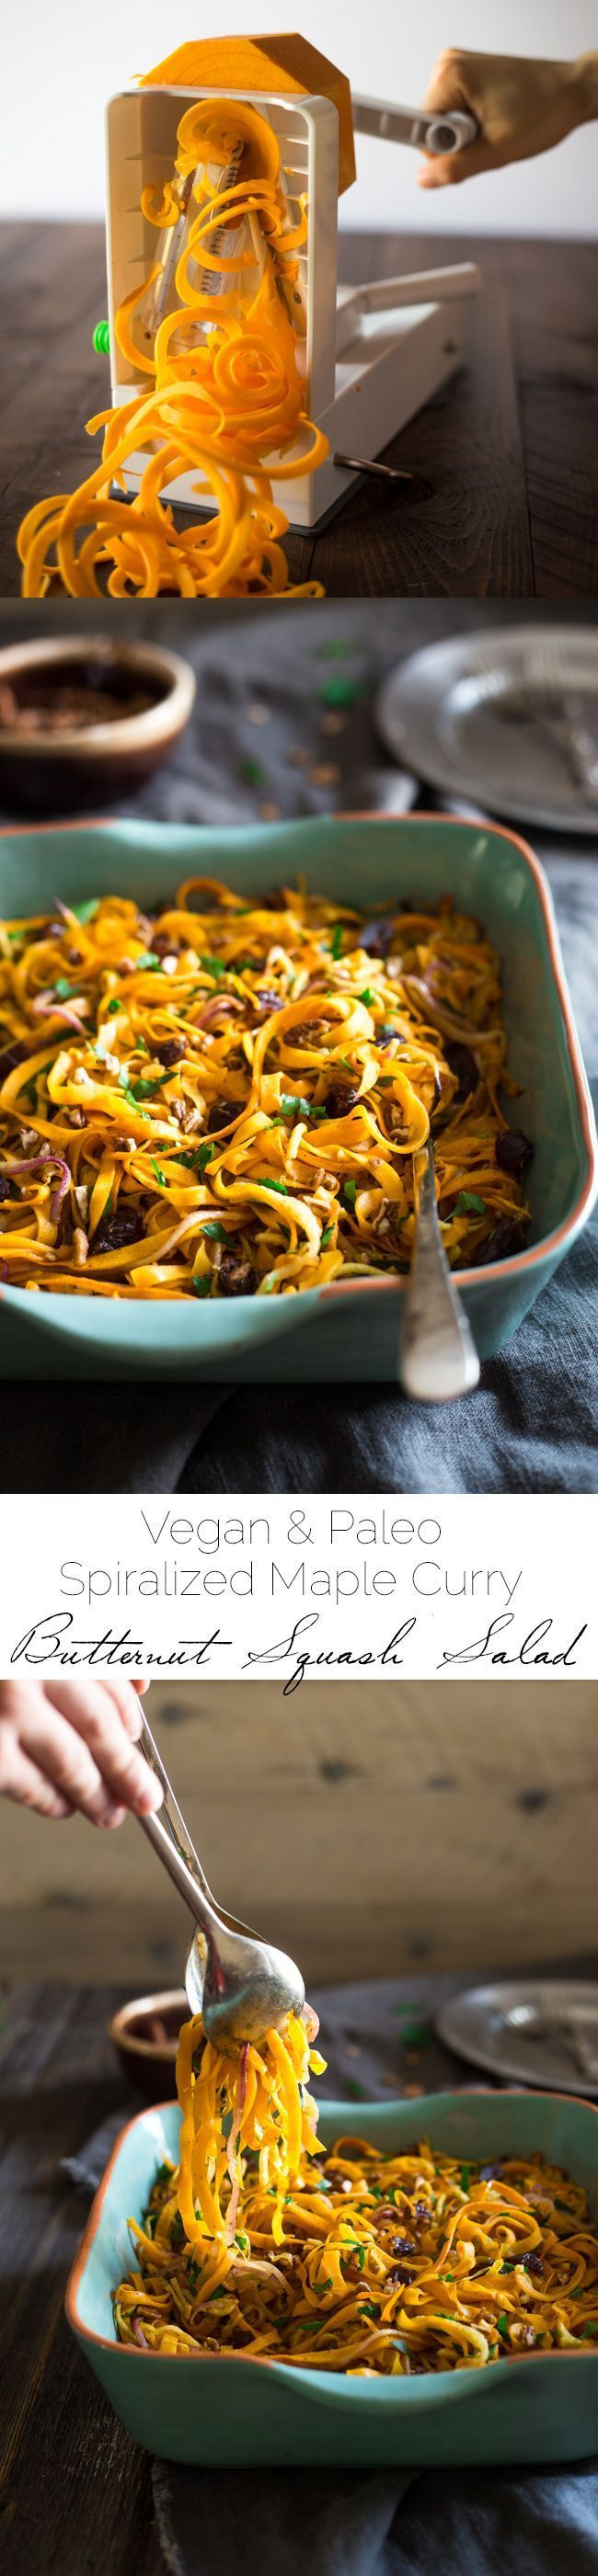 Paleo & Vegan Curried Maple Spiralized Apple and Butternut Squash Salad - This salad is full of apples, dates and pecans. It has a spicy-sweet flavor and is a healthy, paleo and vegan friendly side dish! Perfect for Thanksgiving! | Foodfaithfitness.com | @FoodFaithFit